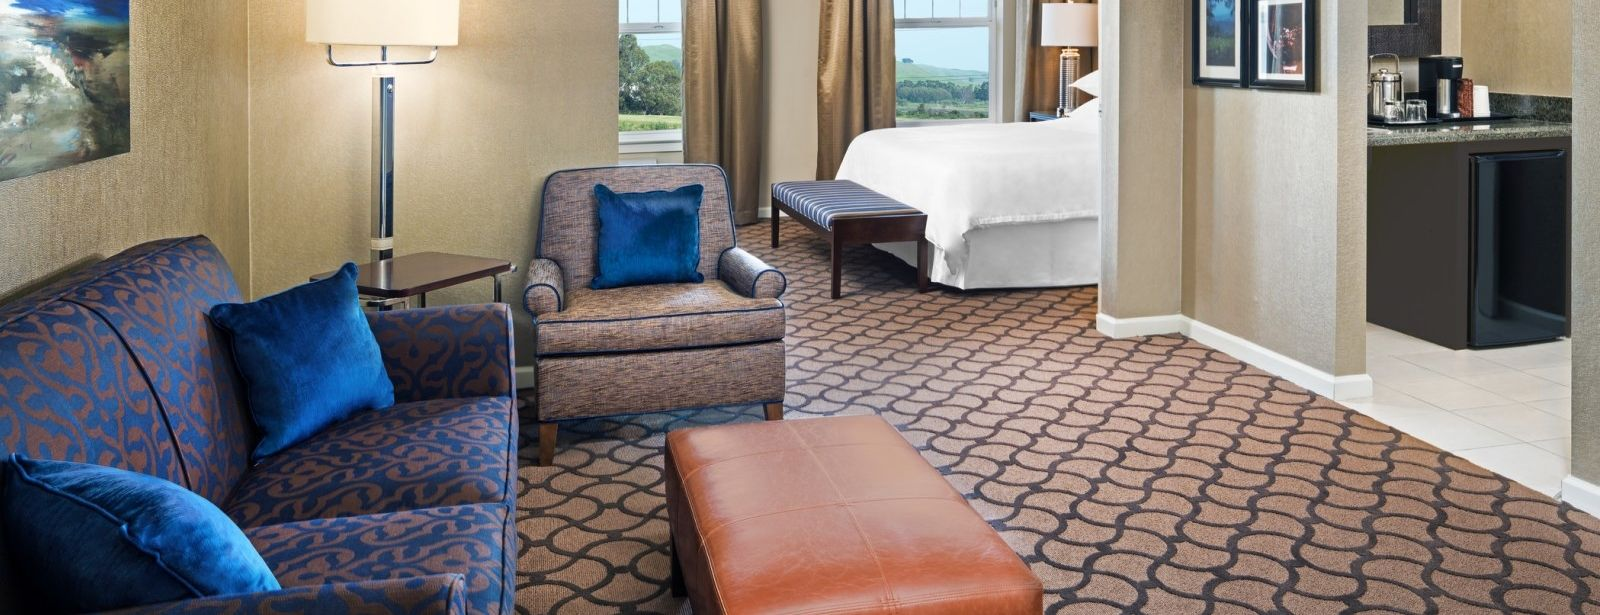 Sheraton Sonoma County – Accessible King Parlor Suite